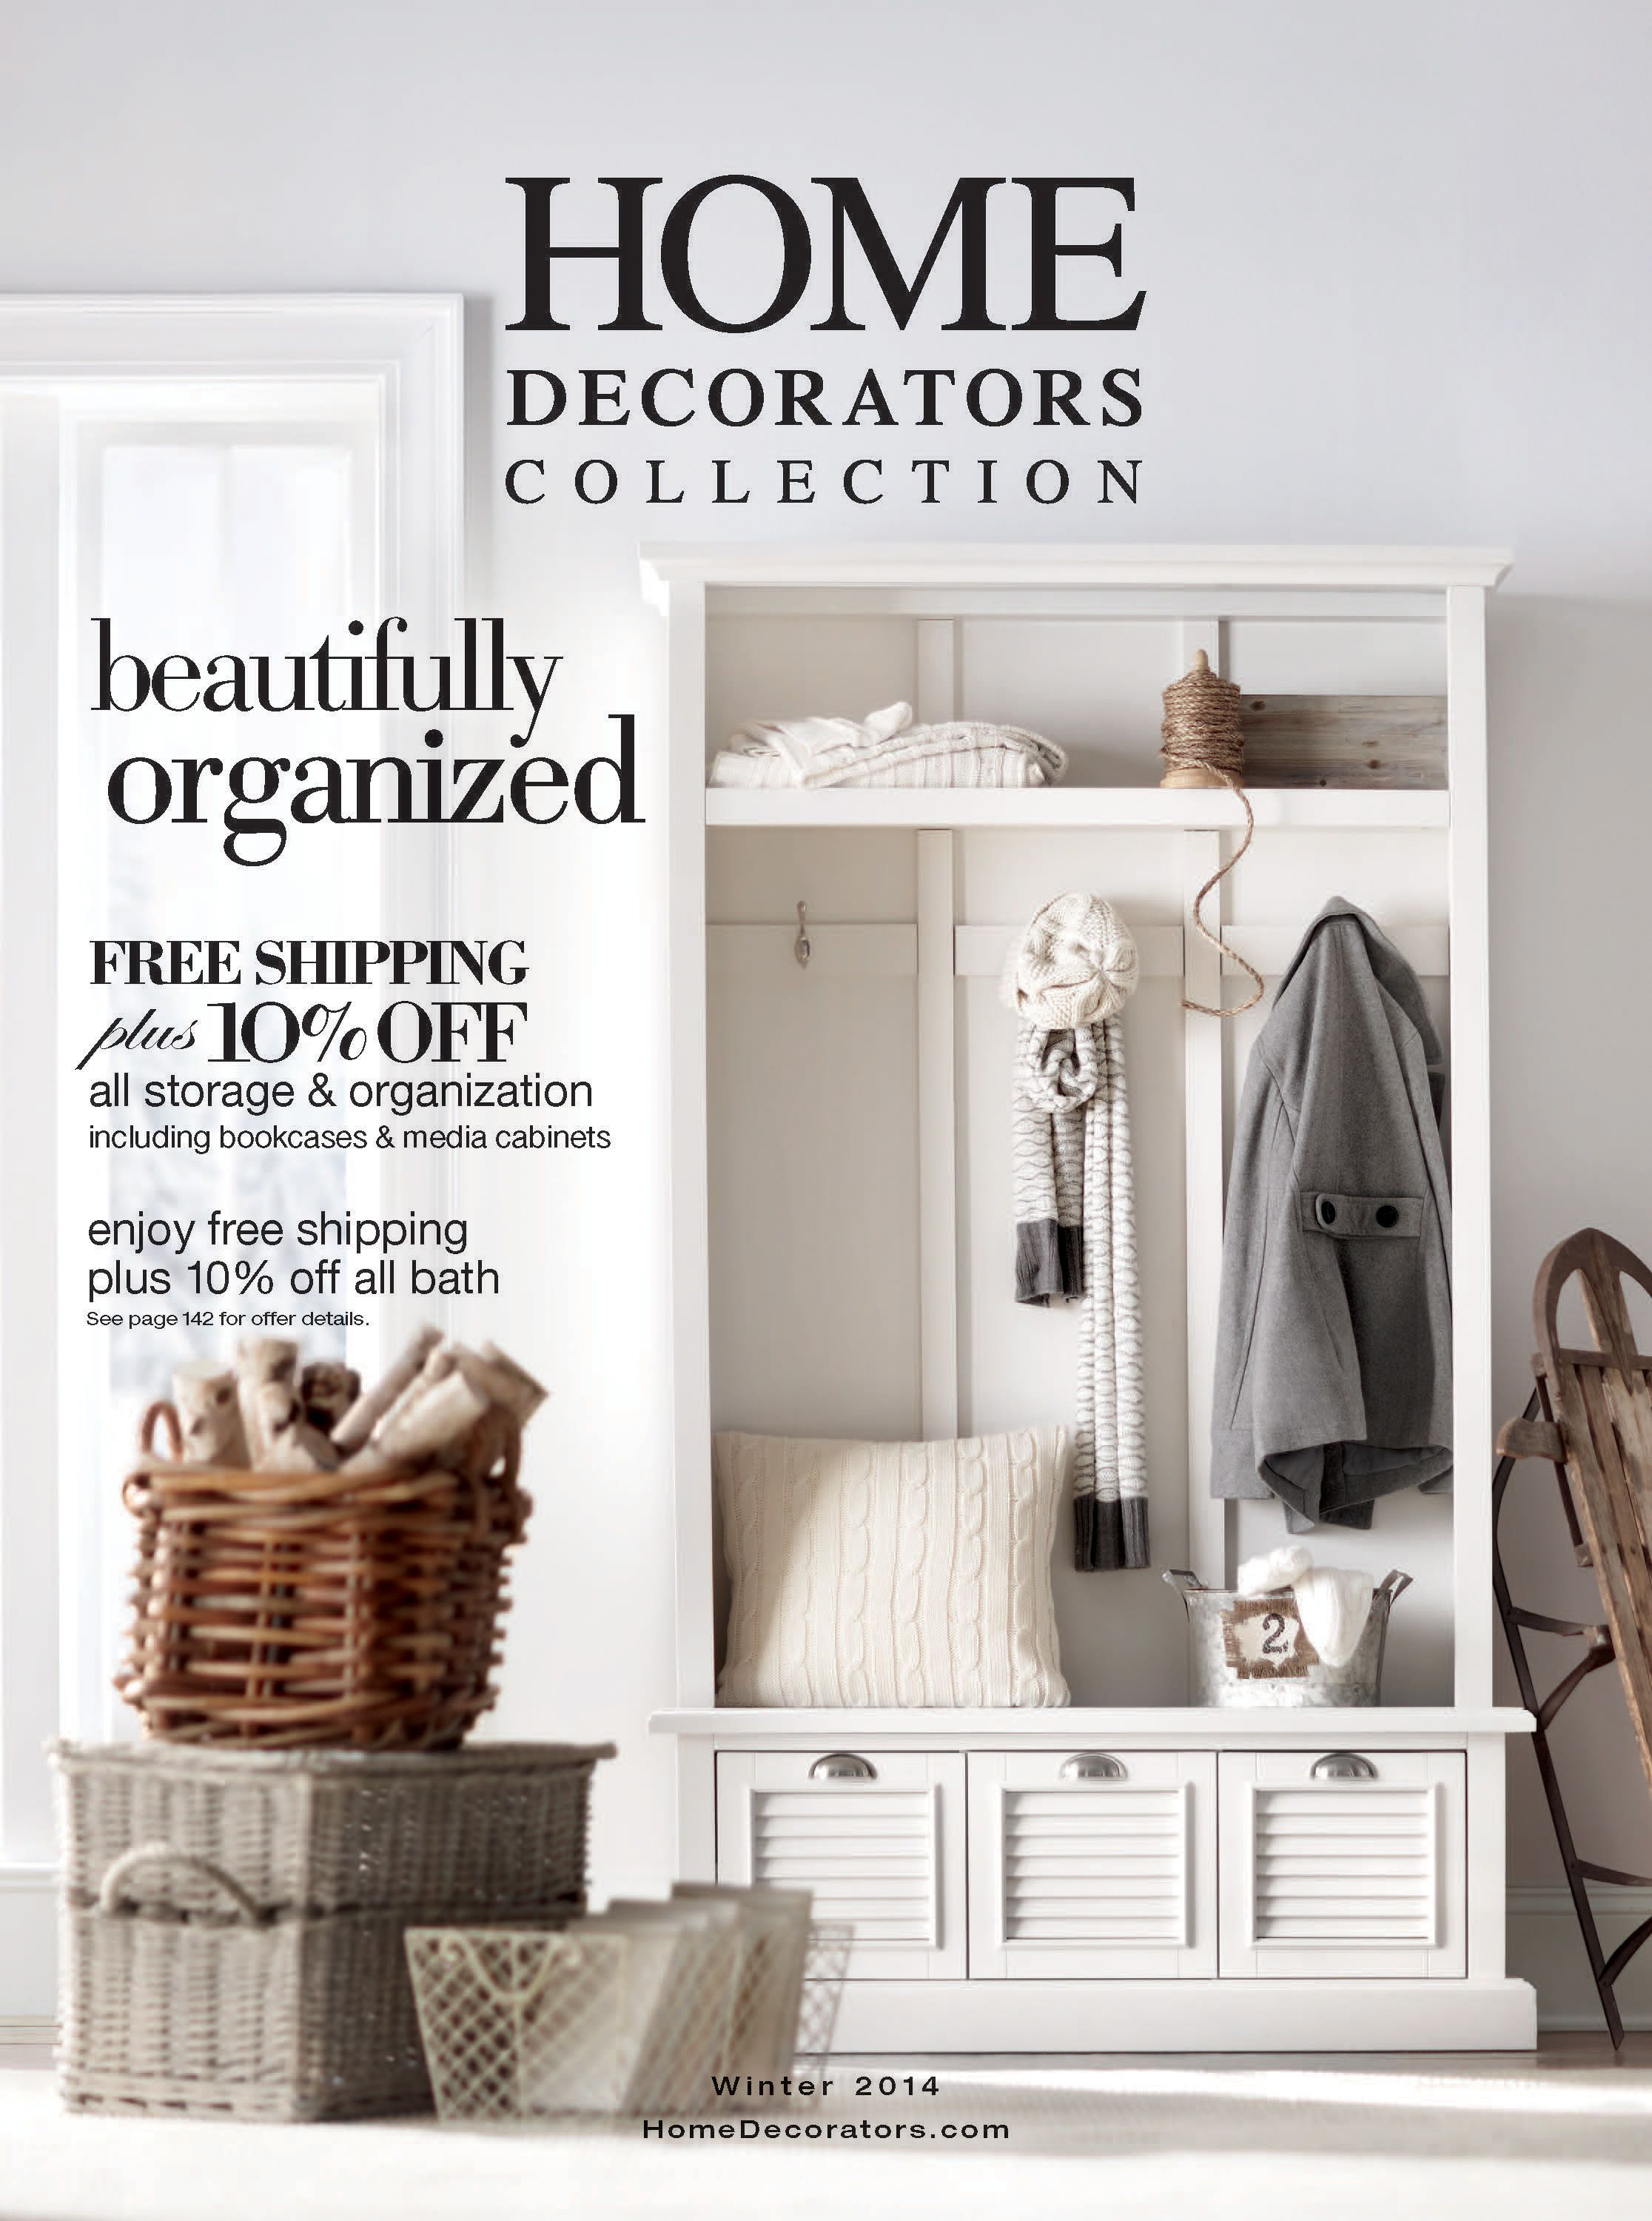 Home Decorators Collection Catalog Order Here Homedecorators Request Php